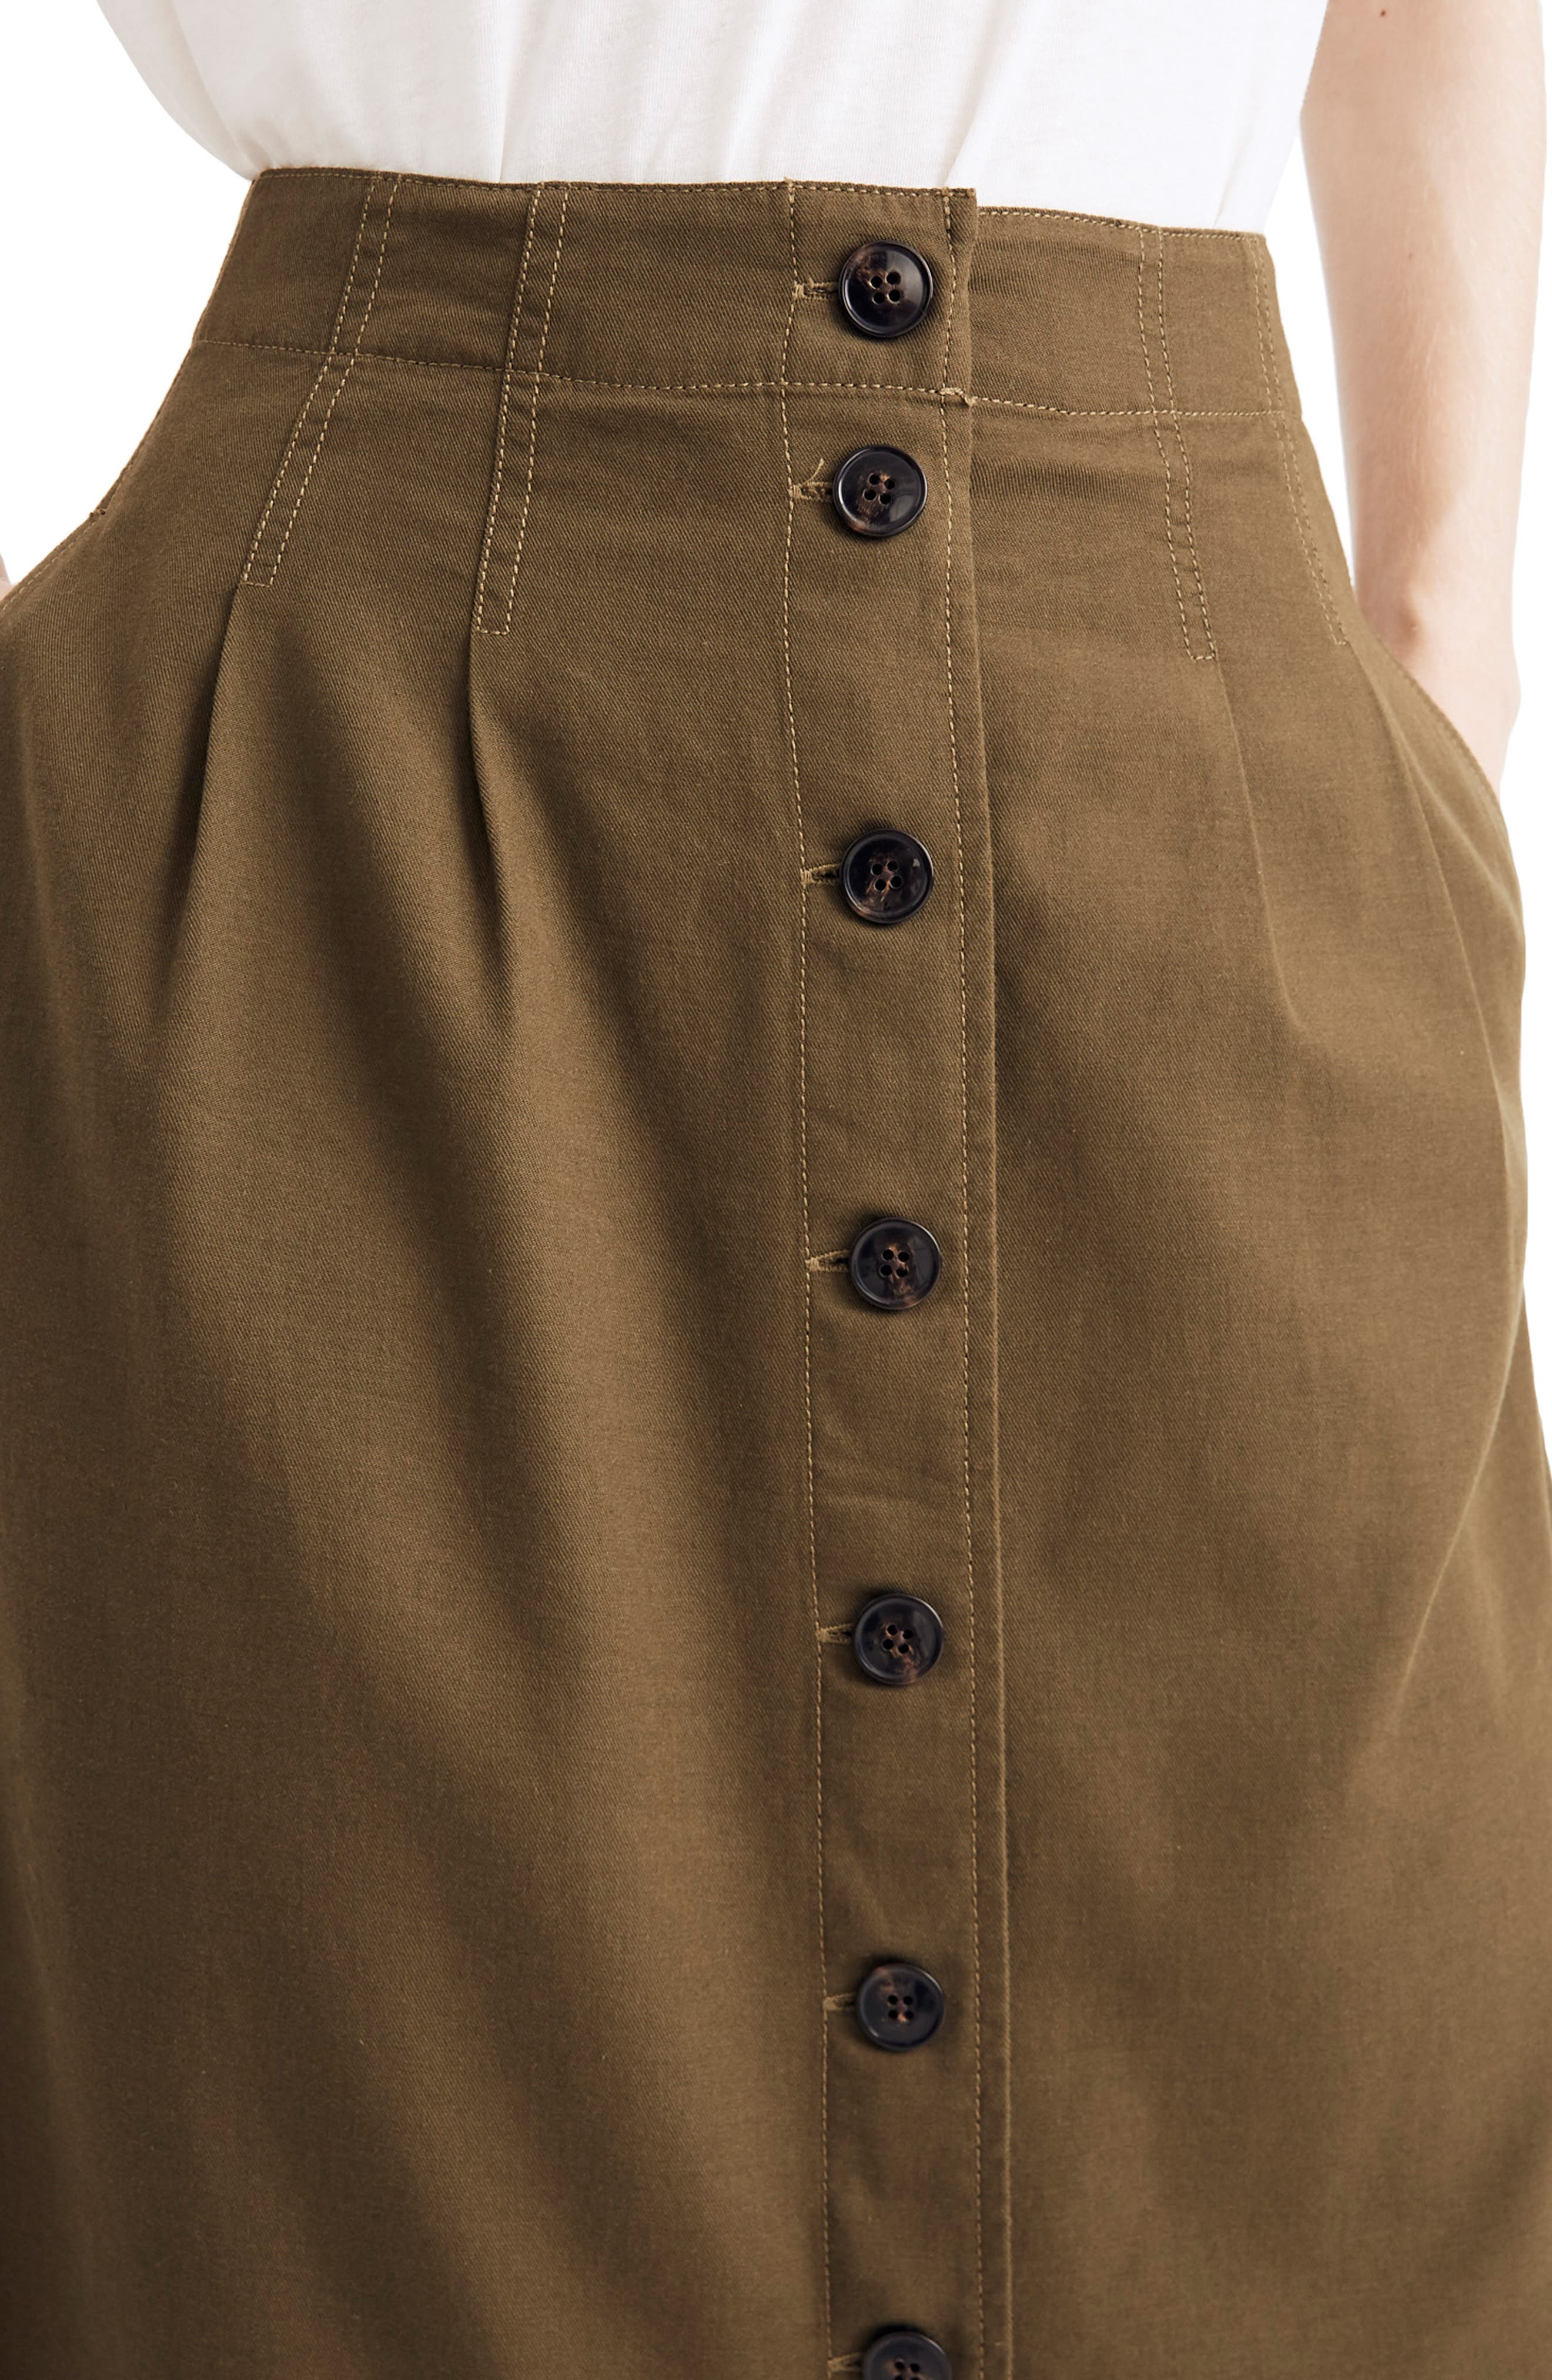 MADEWELL, Patio Button Front Midi Skirt, Alternate thumbnail 4, color, KALE